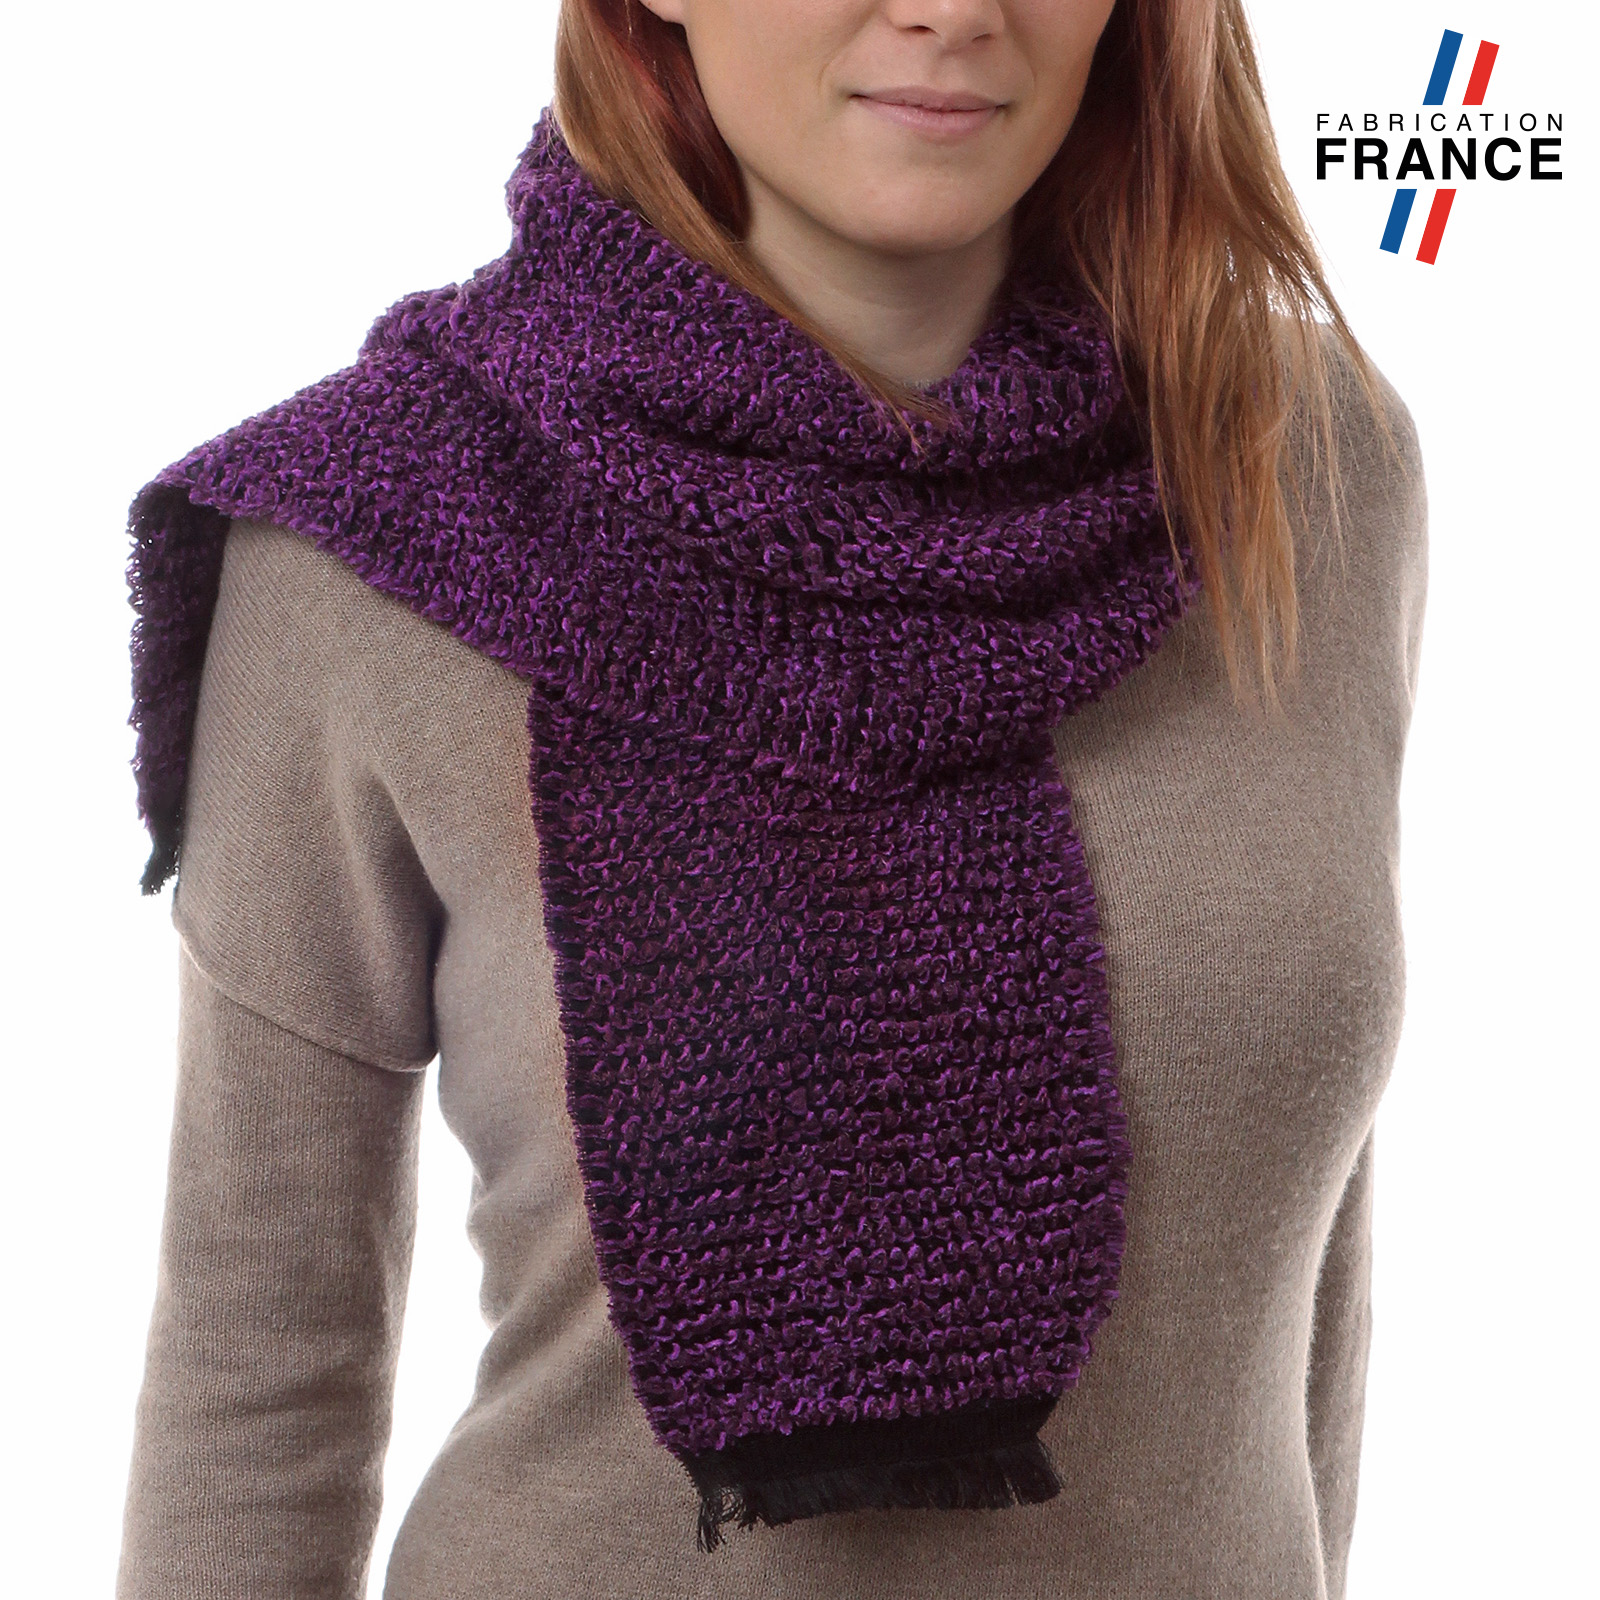 AT-03481-V16-echarpe-femme-fabrication-france-violet